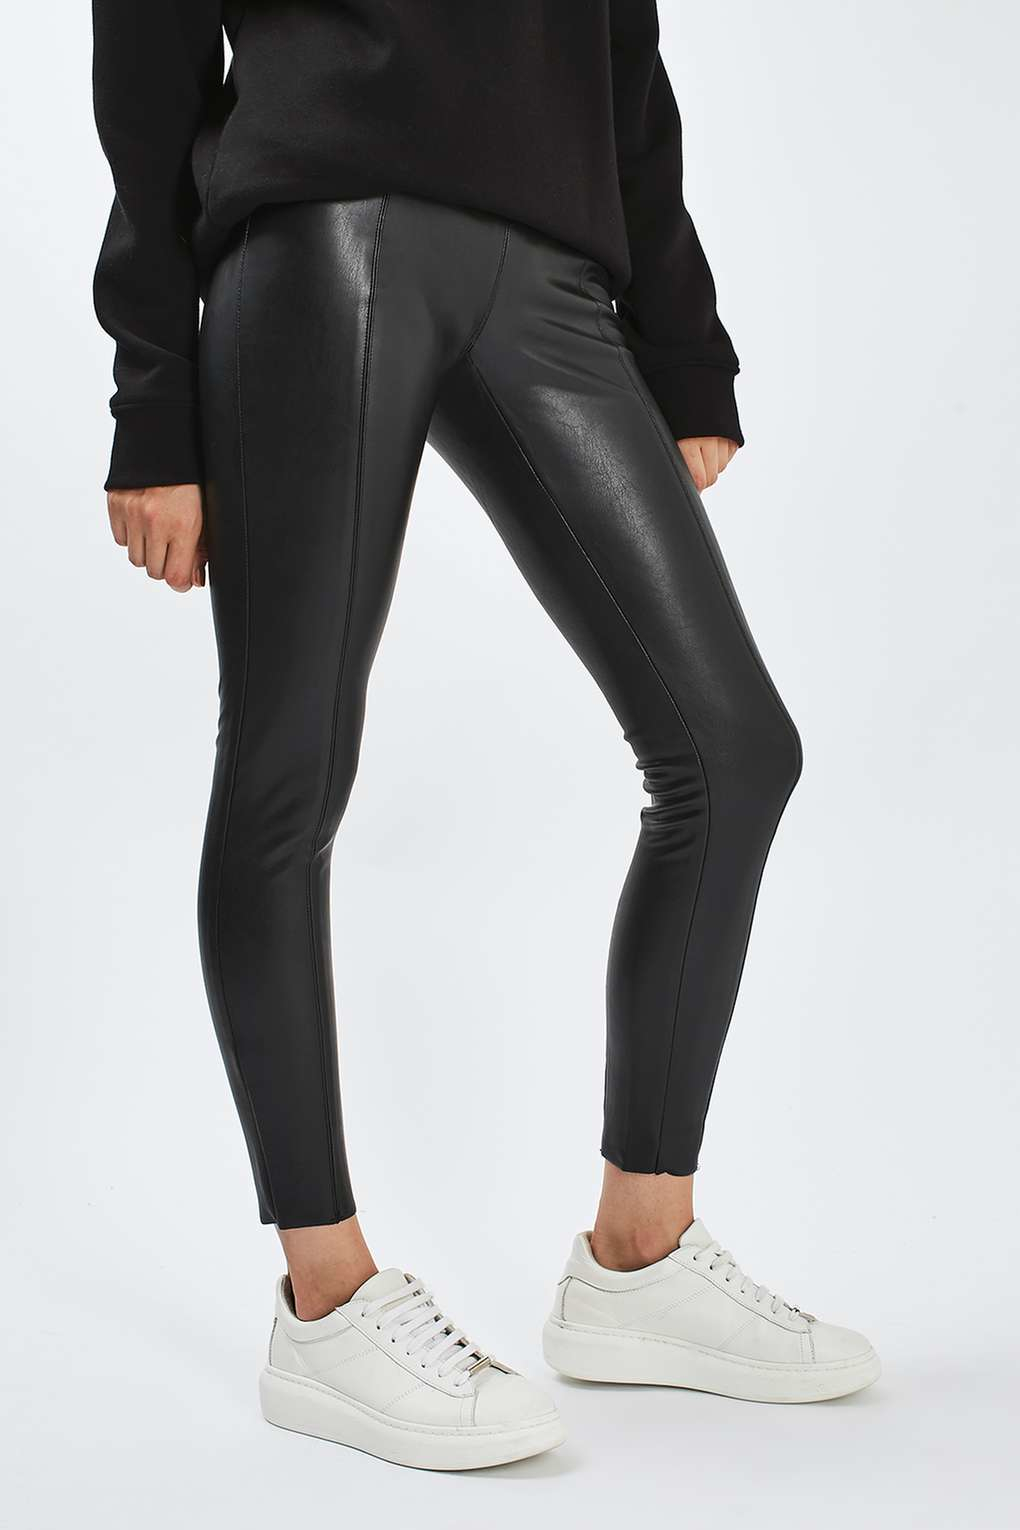 how to buy professional website aliexpress TOPSHOP Black Percy Faux Leather Skinny Pants